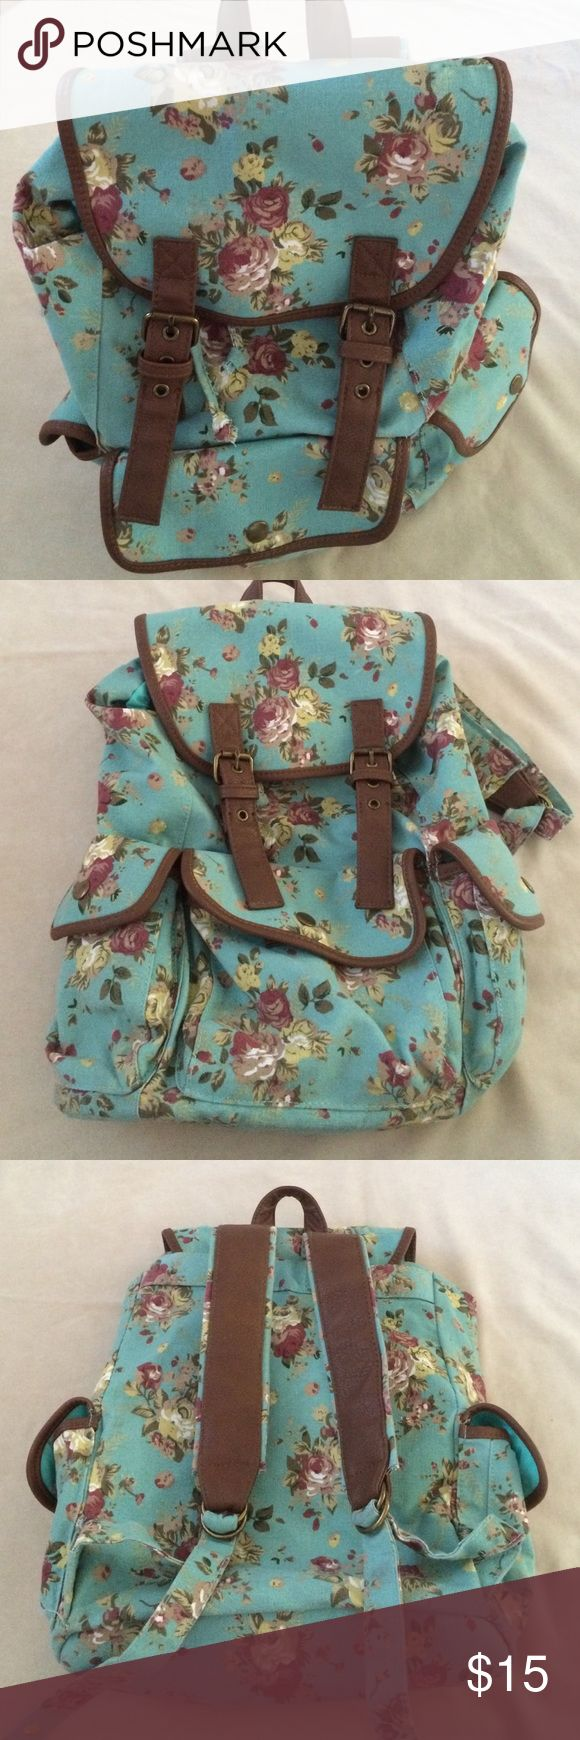 Candies floral backpack EUC!  Cute pattern. Faux leather trim Candies Bags Backpacks